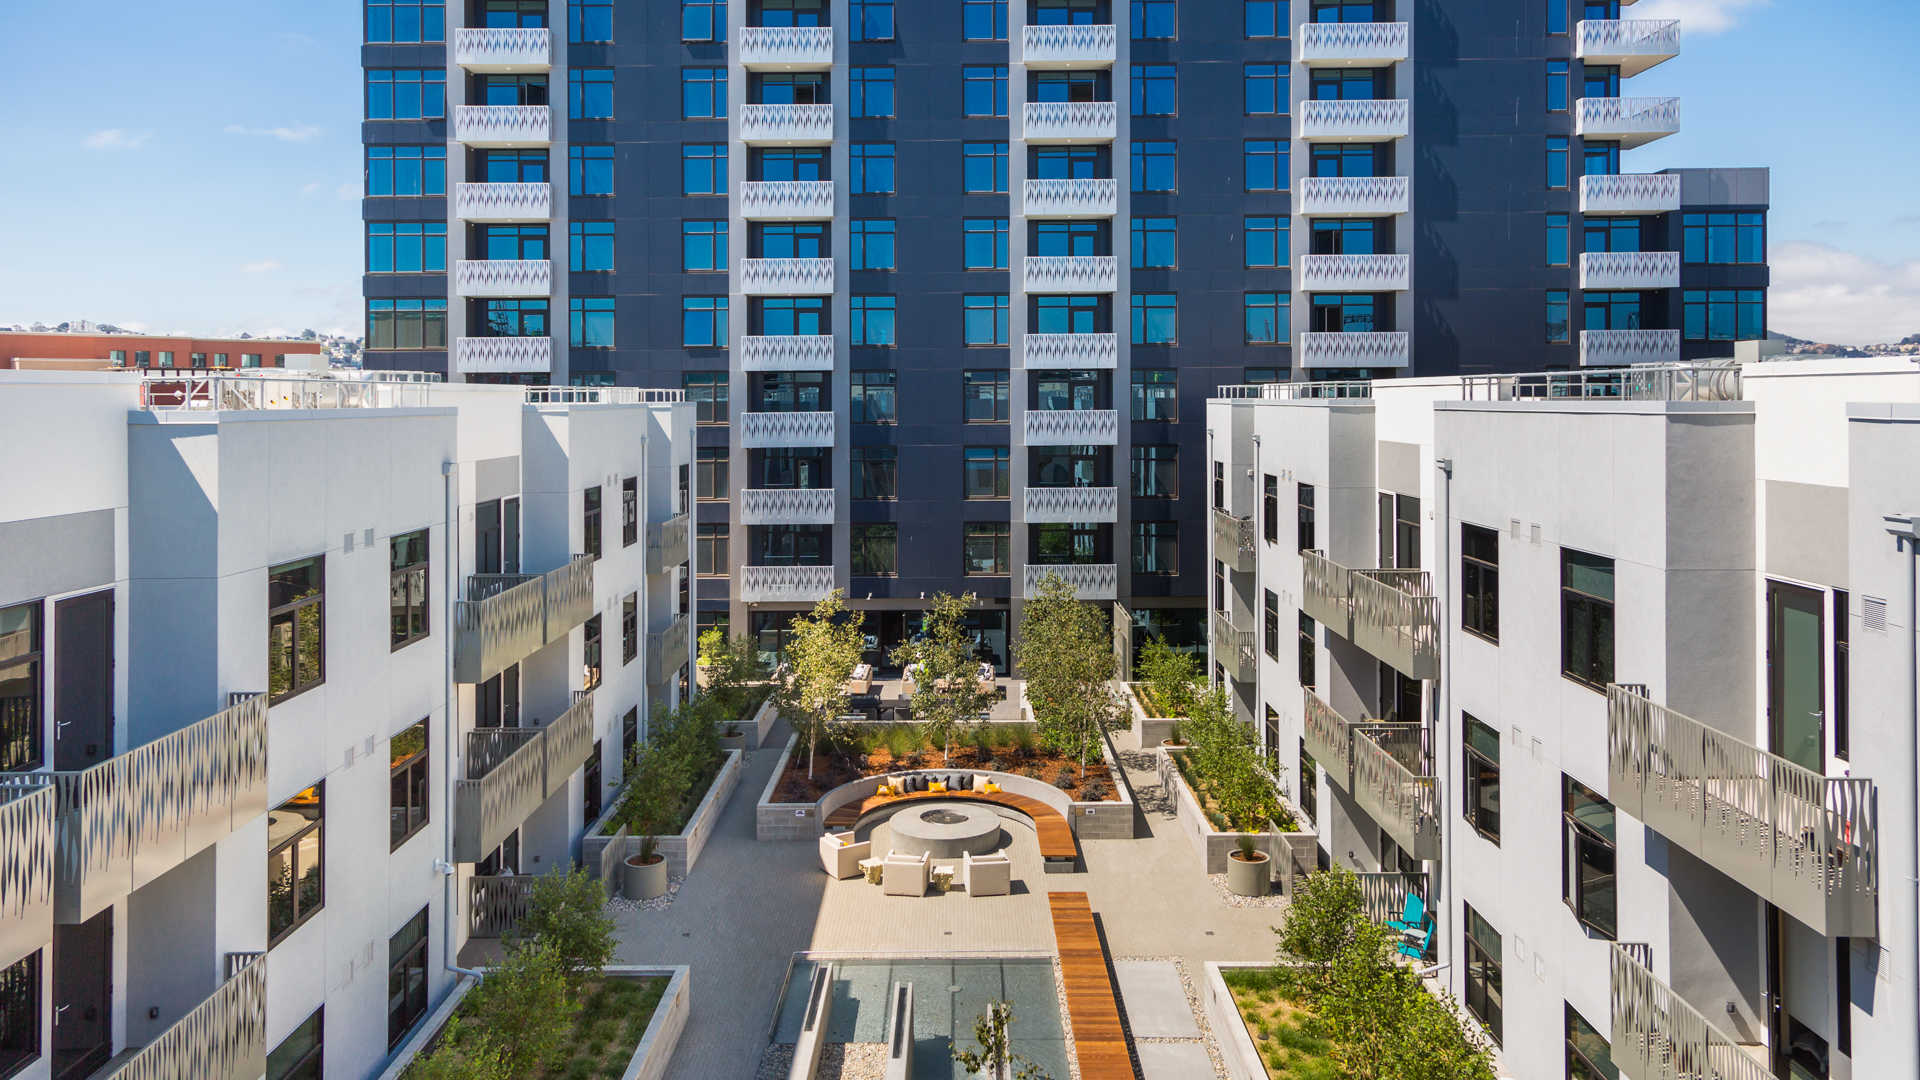 Azure apartments courtyard